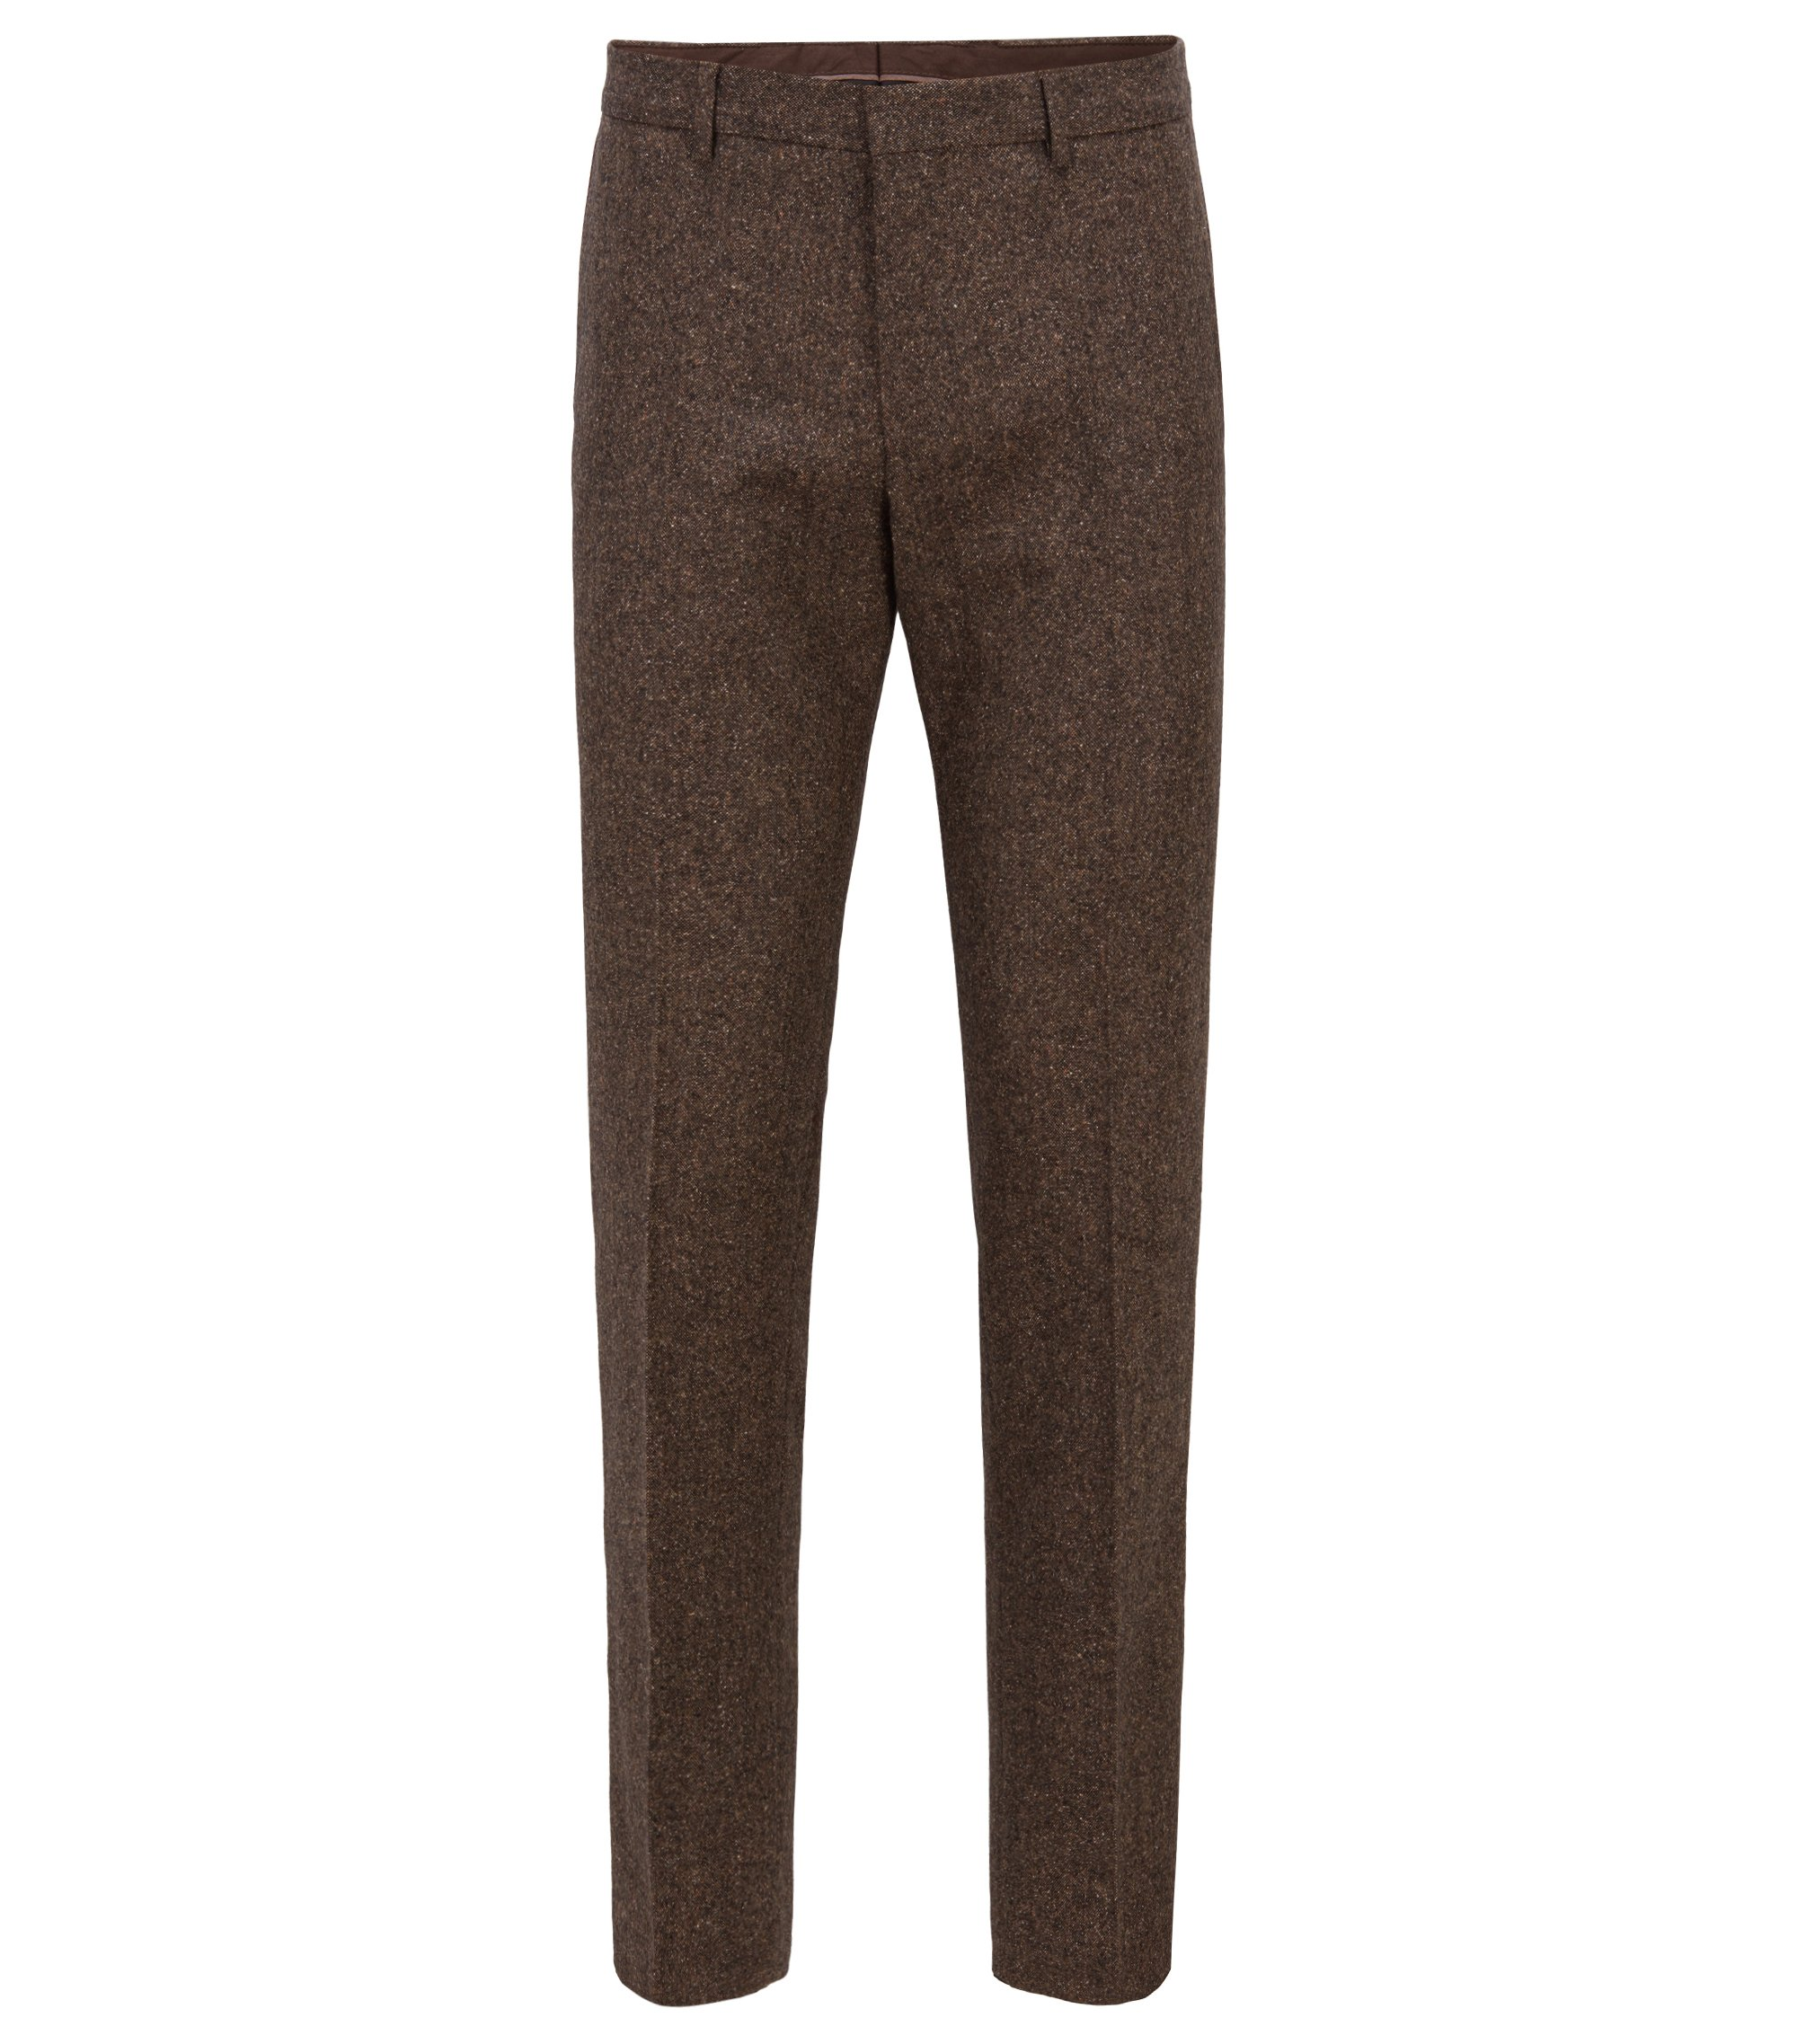 Pantaloni slim fit in tweed di misto lana vergine, Marrone chiaro